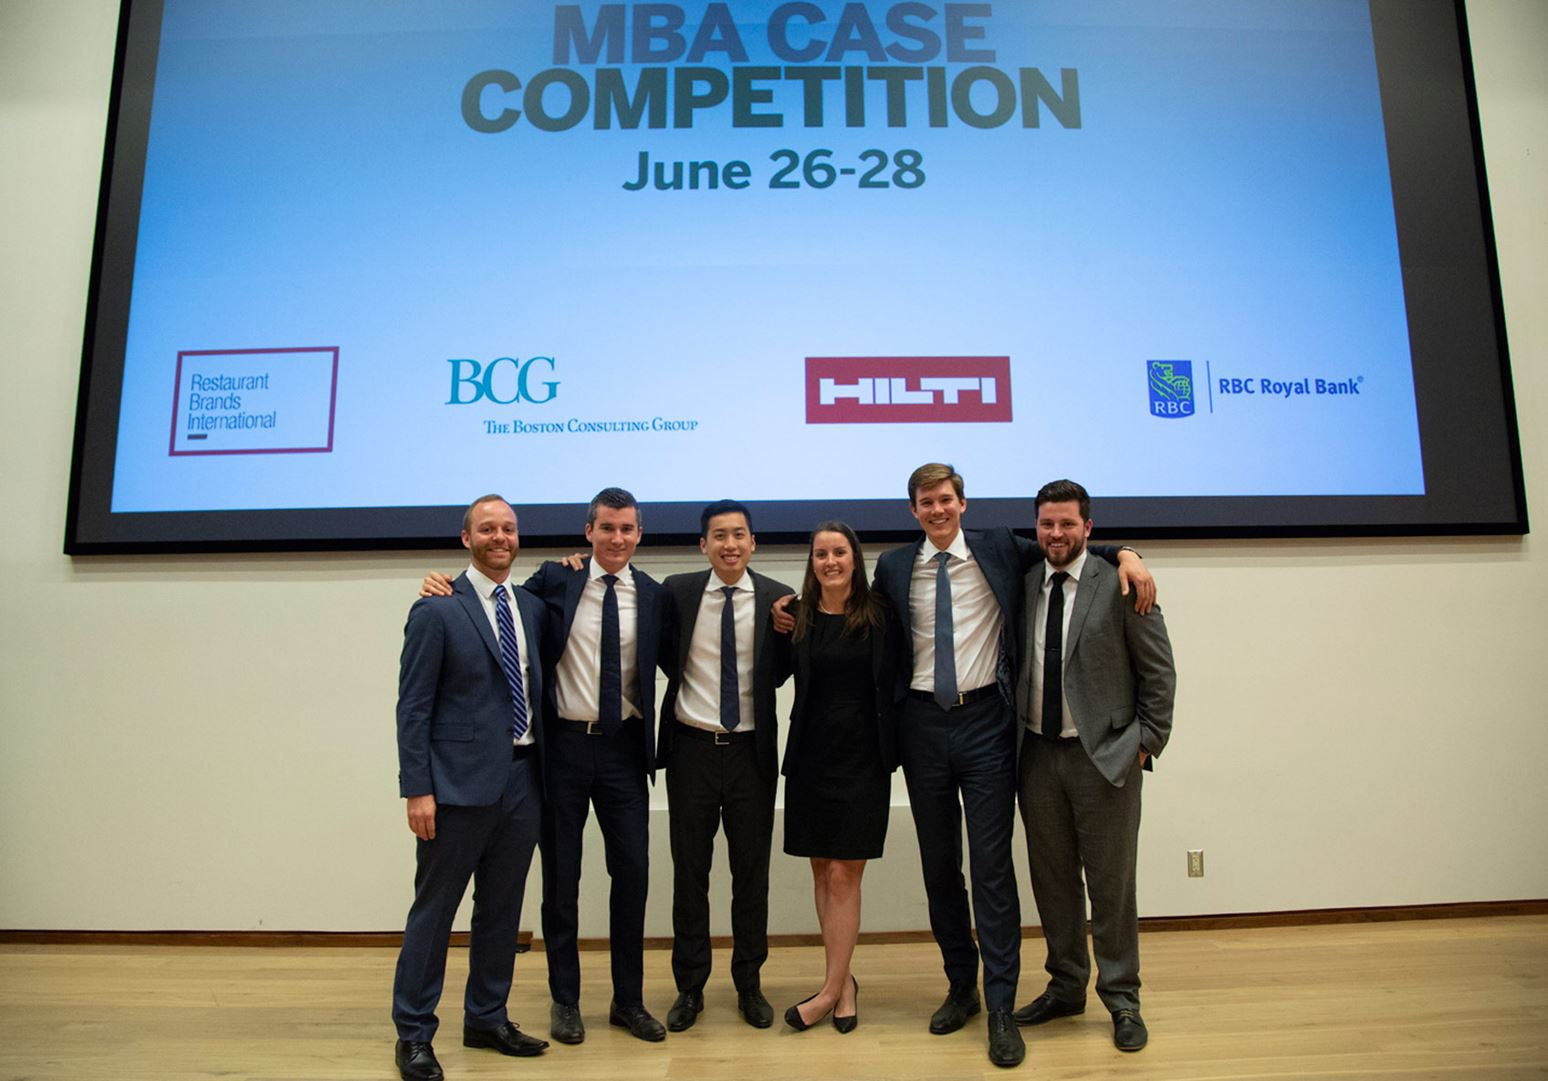 In it to win it: The 2018 MBA Case Competition